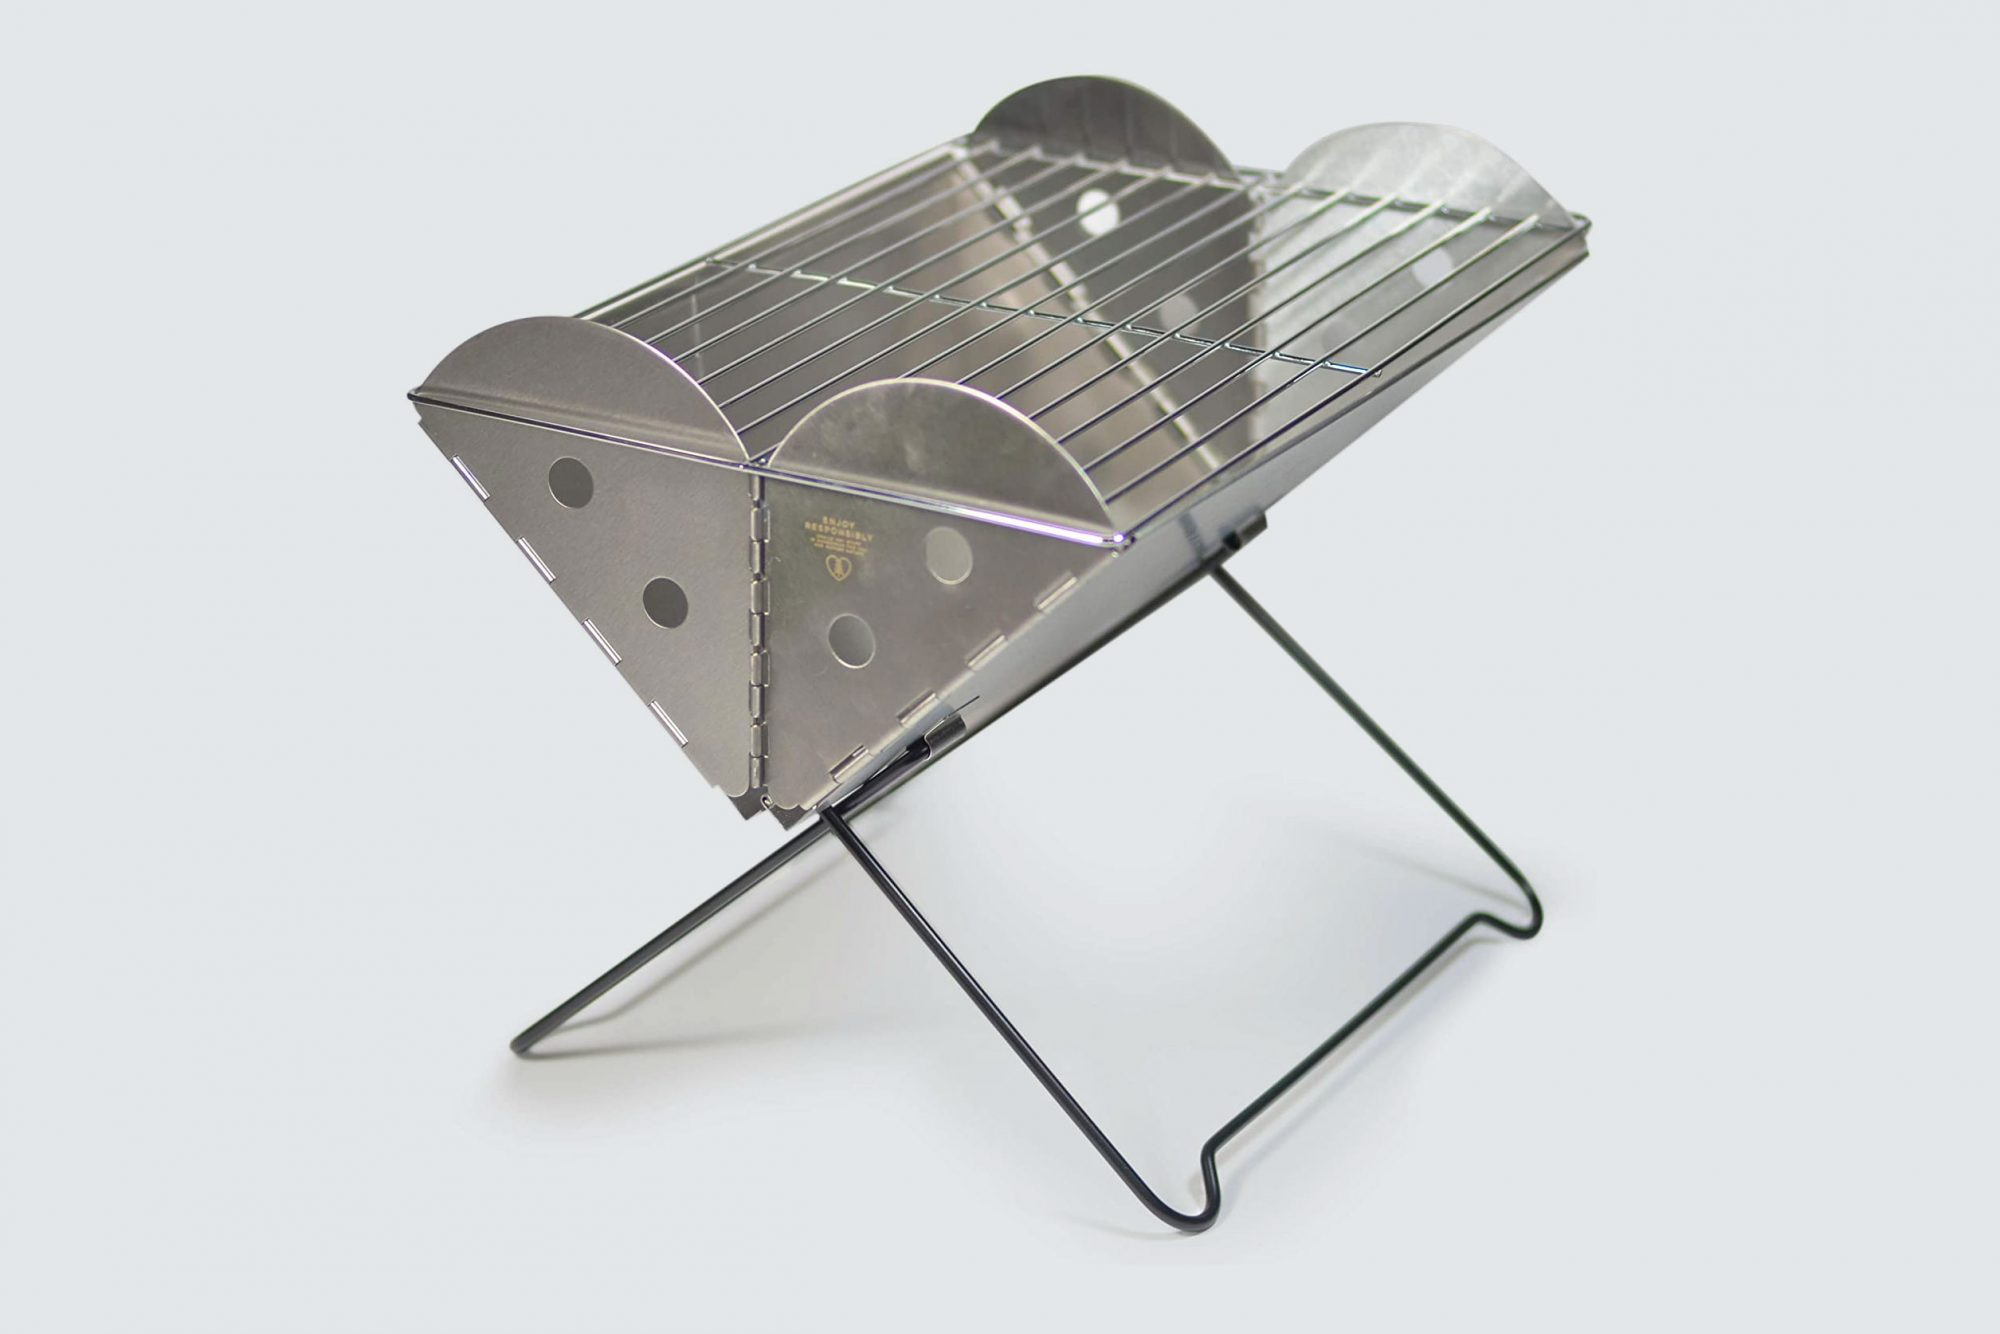 UCO Portable Stainless Steel Grill and Fire Pit